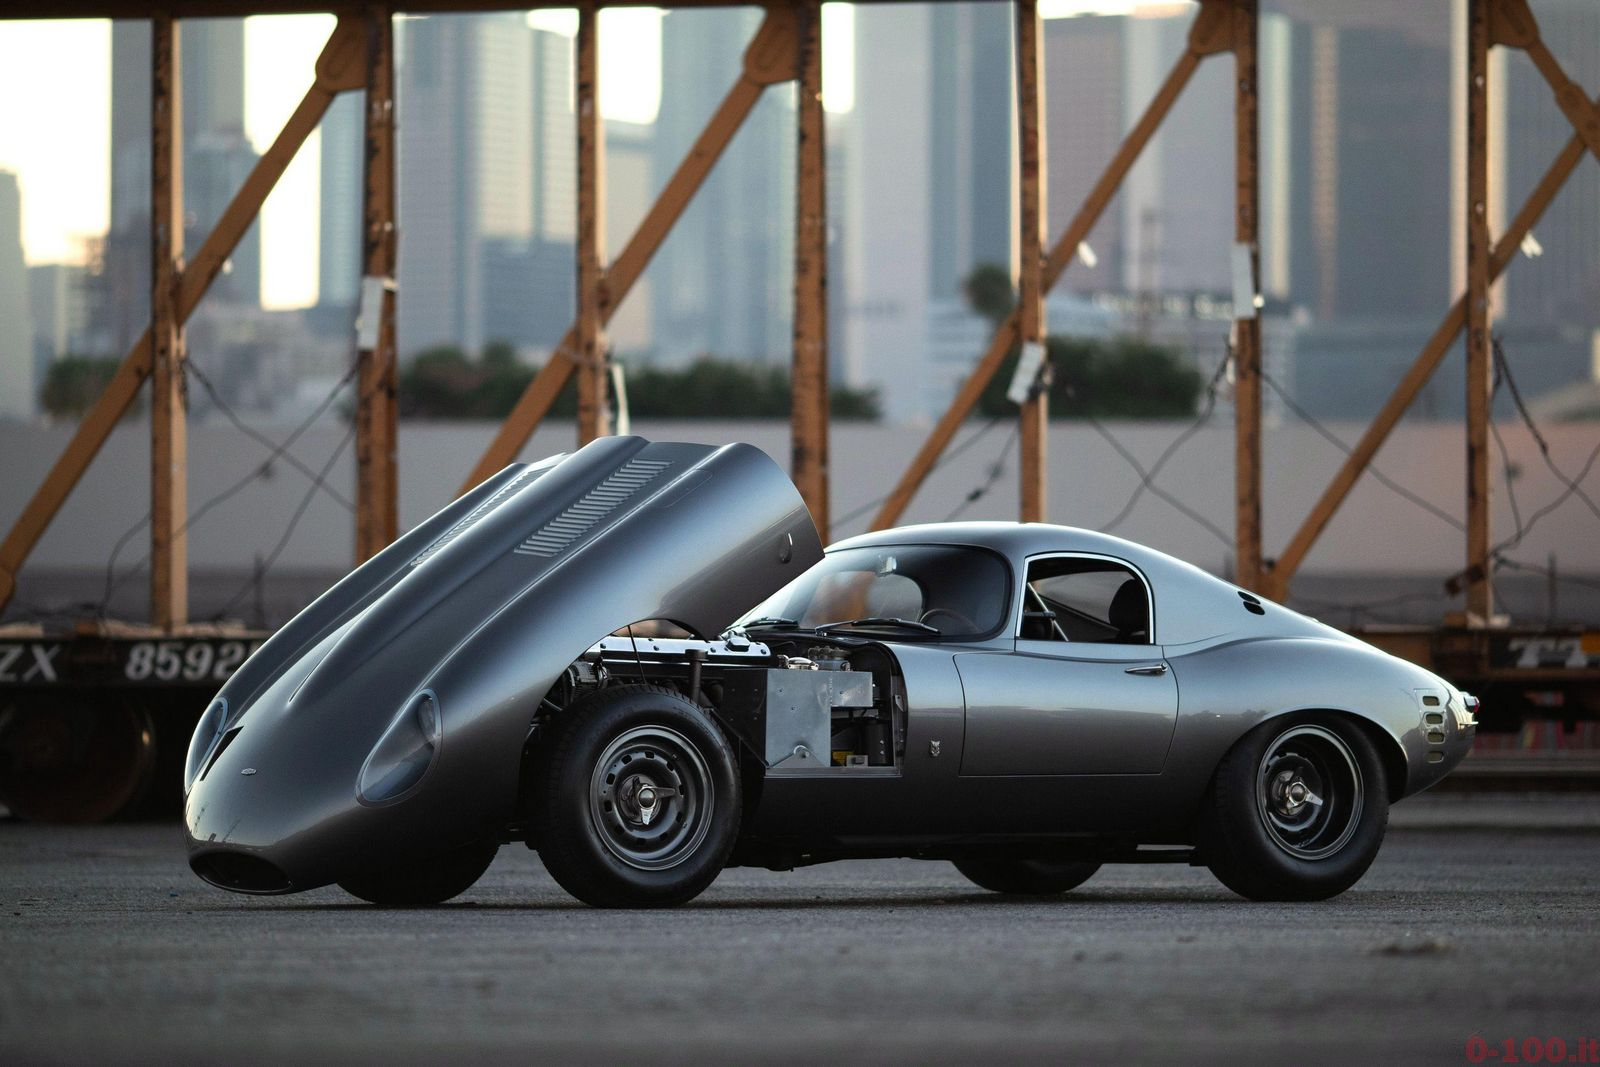 diez_concept_replica_restomod_jaguar_e_type_lightweight_low_drag_coupe_1964_0-100_8